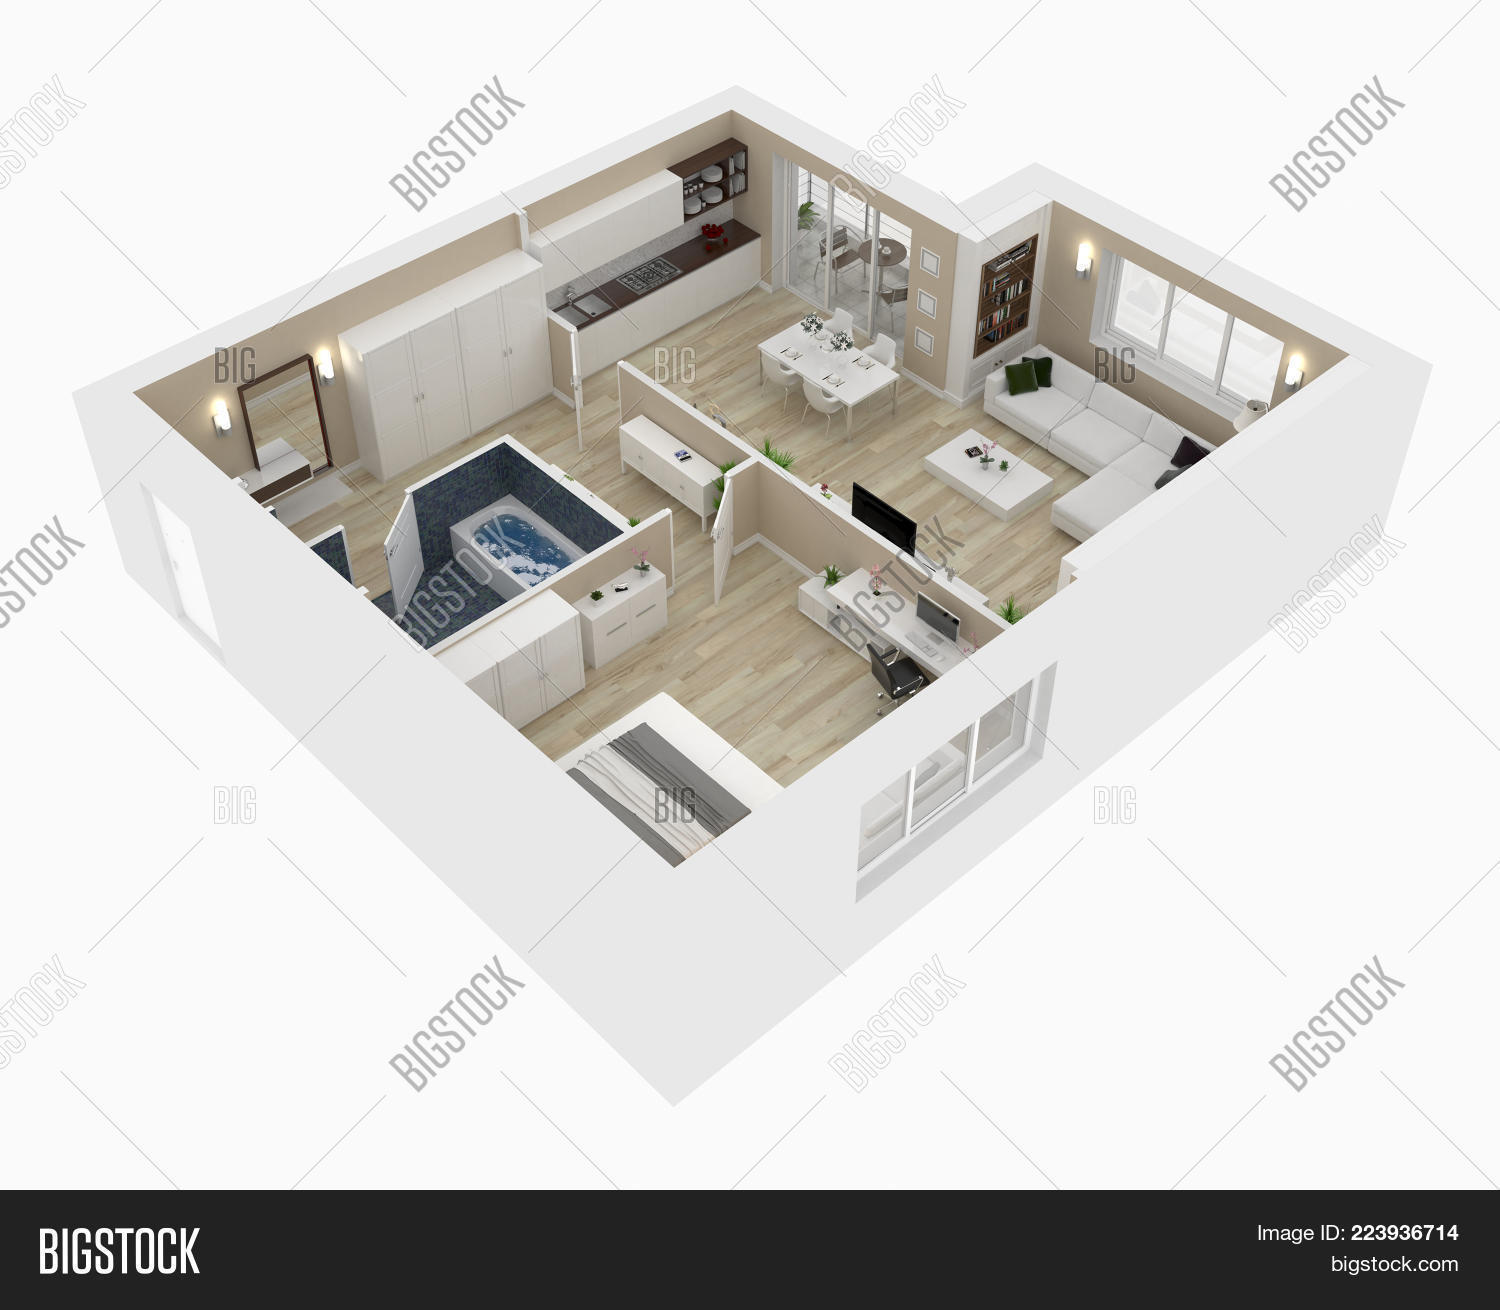 Perspective House Floor Plan Powerpoint Template Perspective House